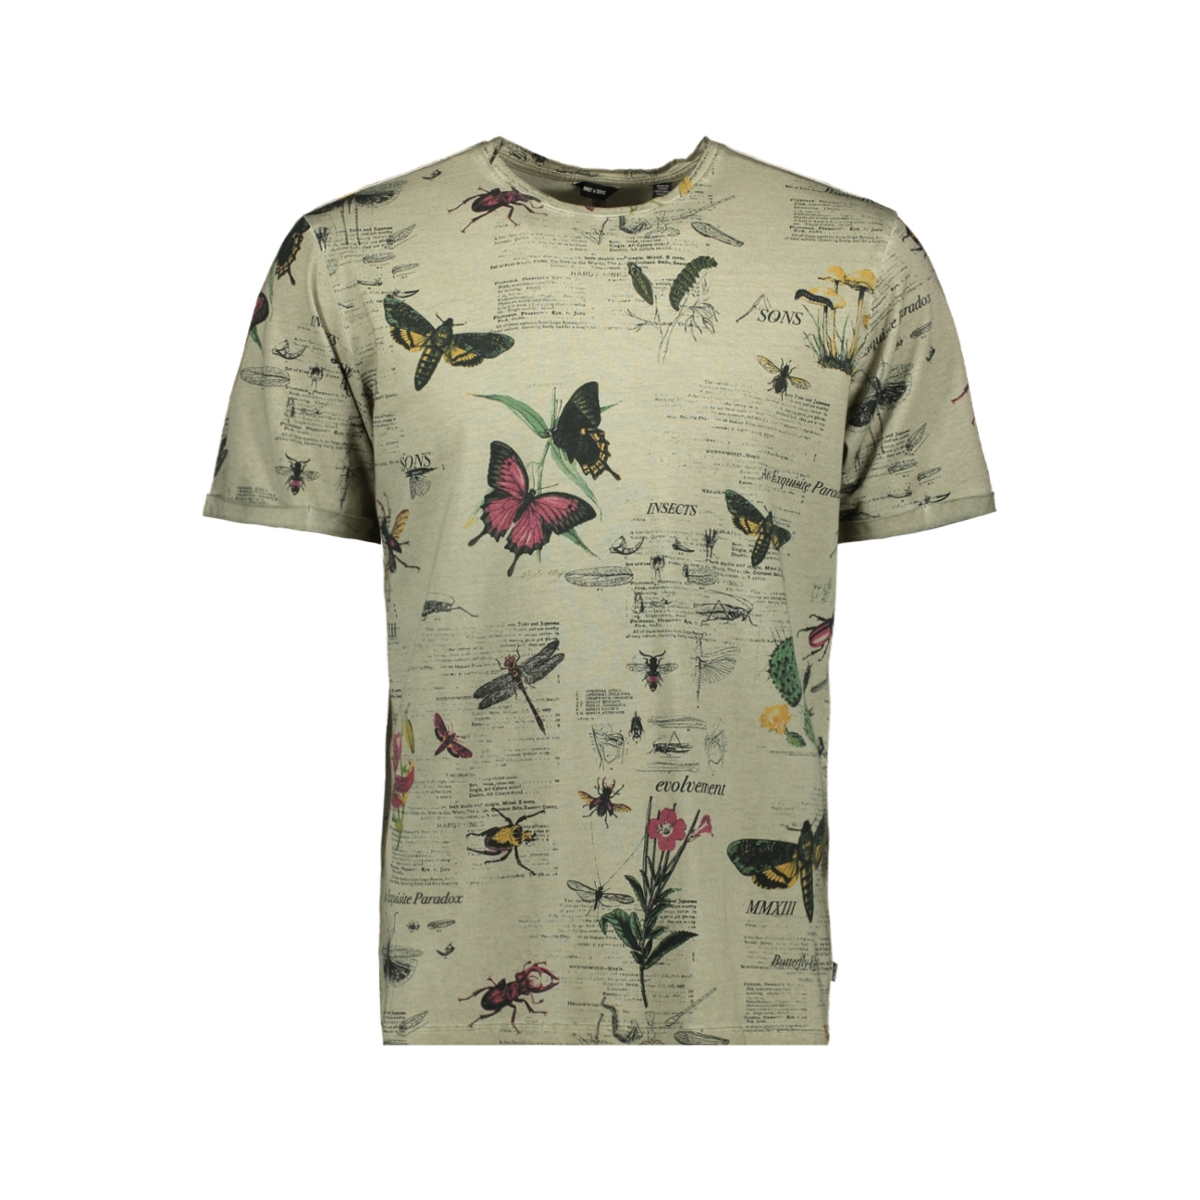 onsnew dimas bugy tee 22014079 only & sons t-shirt seagrass